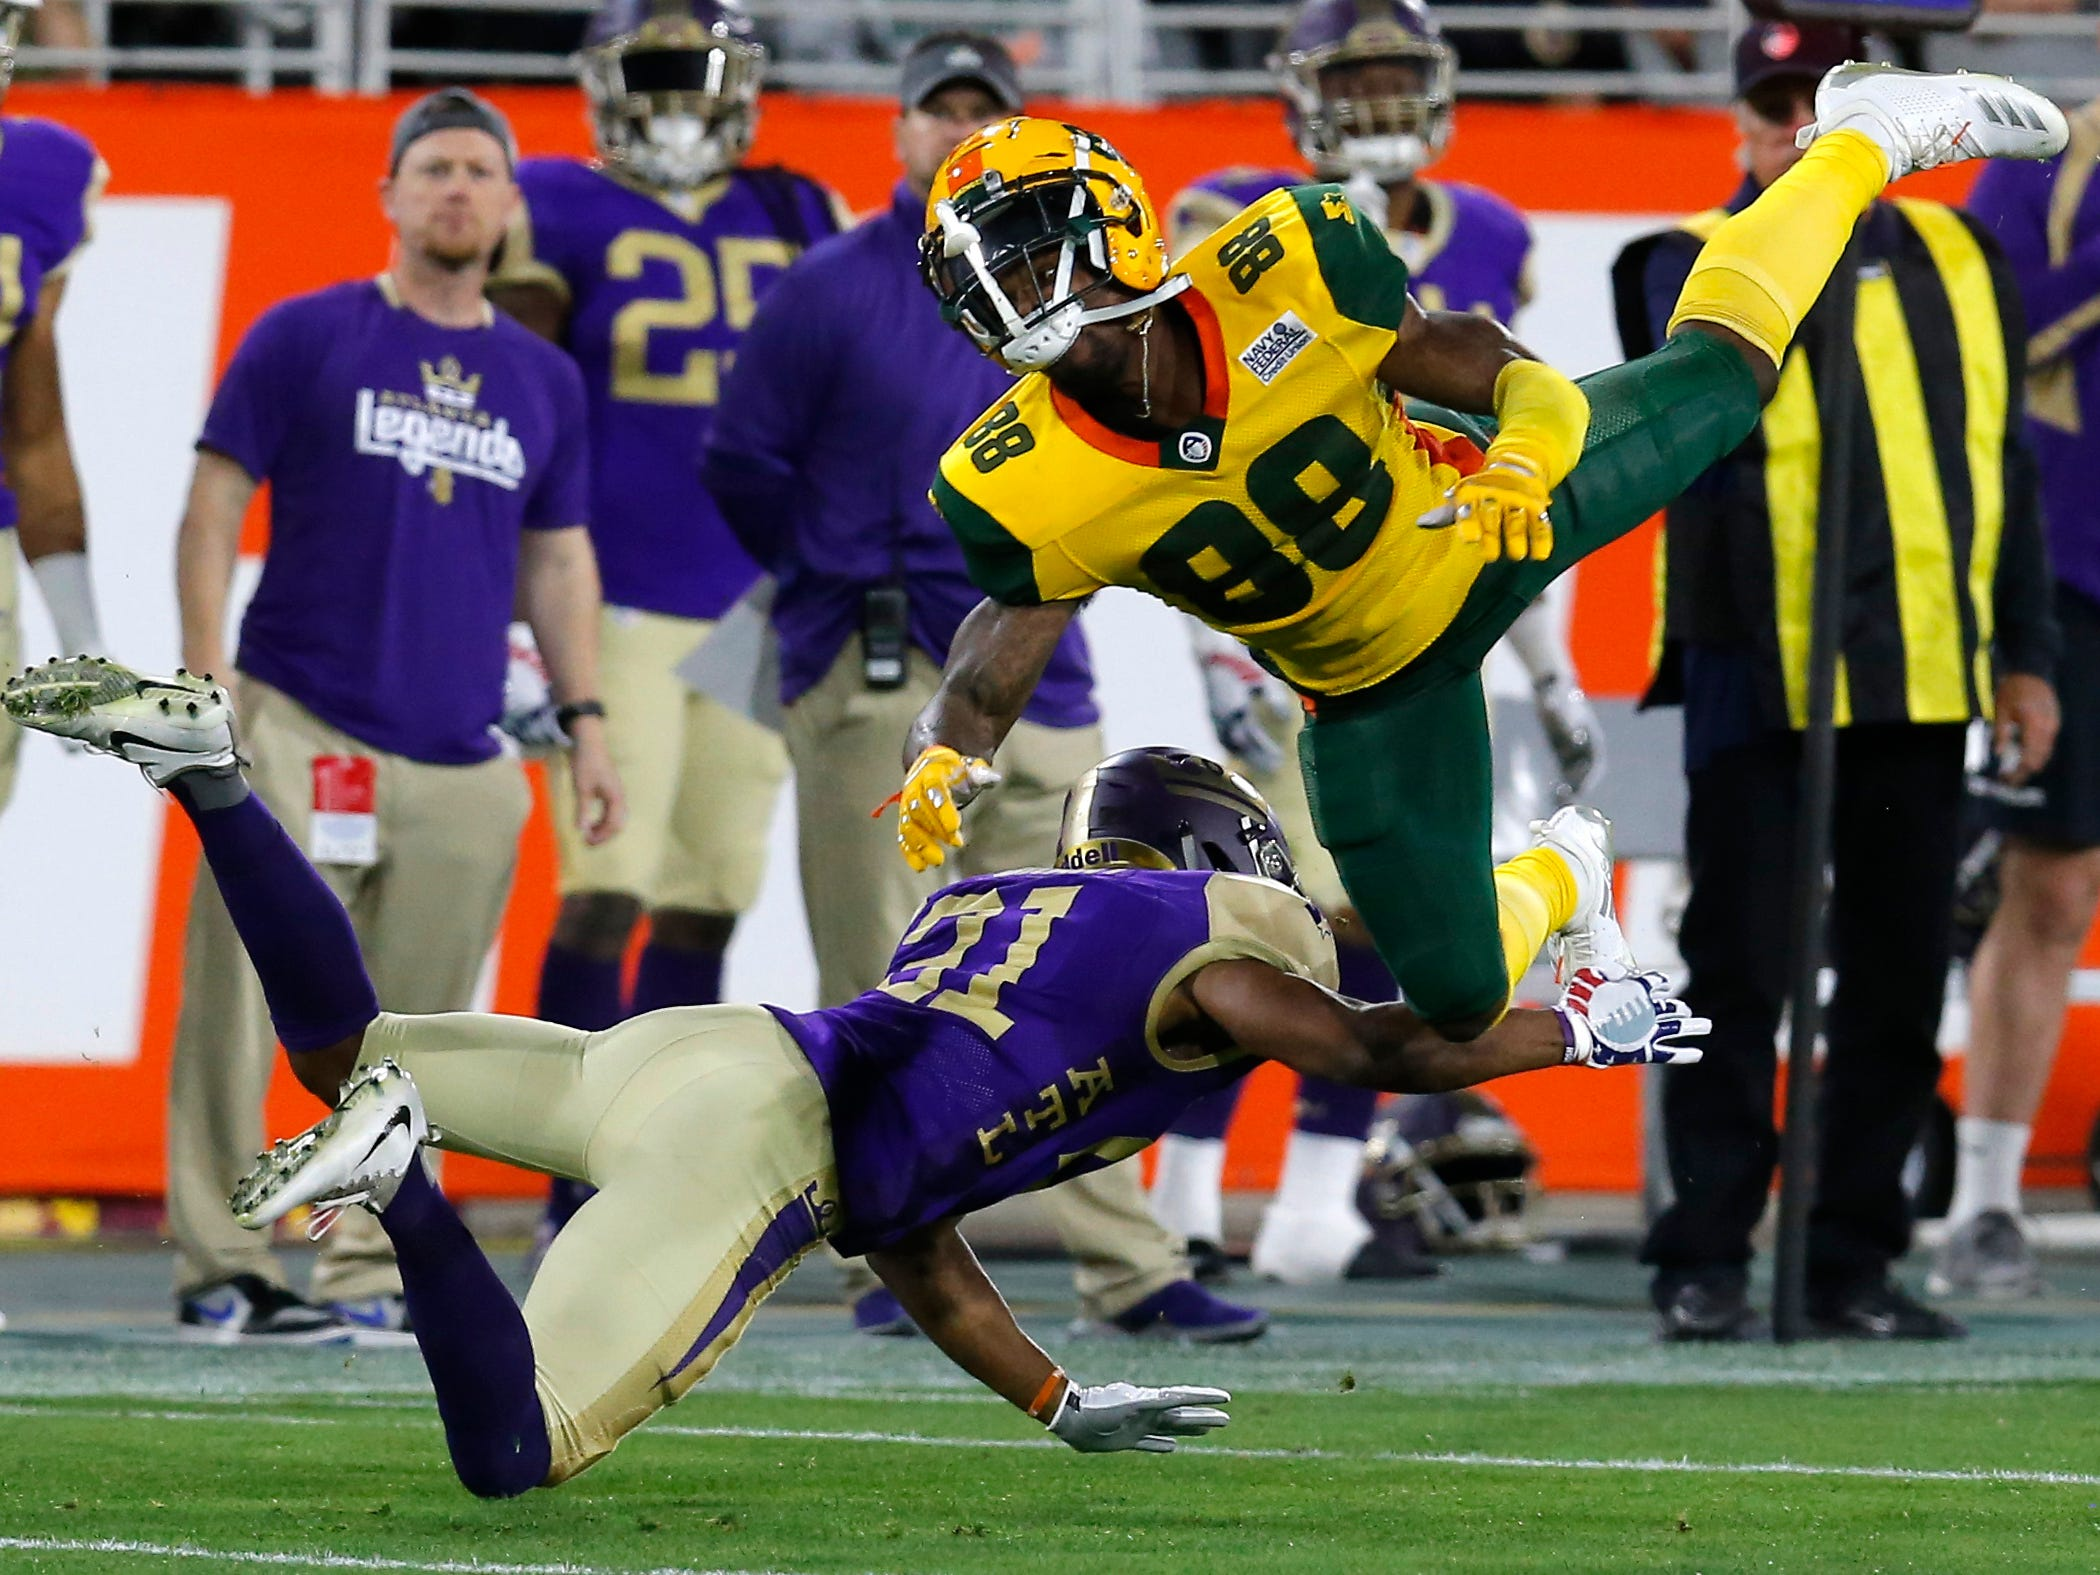 Atlanta Legends defensive back Doran Grant (21) breaks up a pass intended for Arizona Hotshots wide receiver Josh Huff (88) in the second half during an AAF football game, Sunday, March 3, 2019, at Sun Devil Stadium in Phoenix.